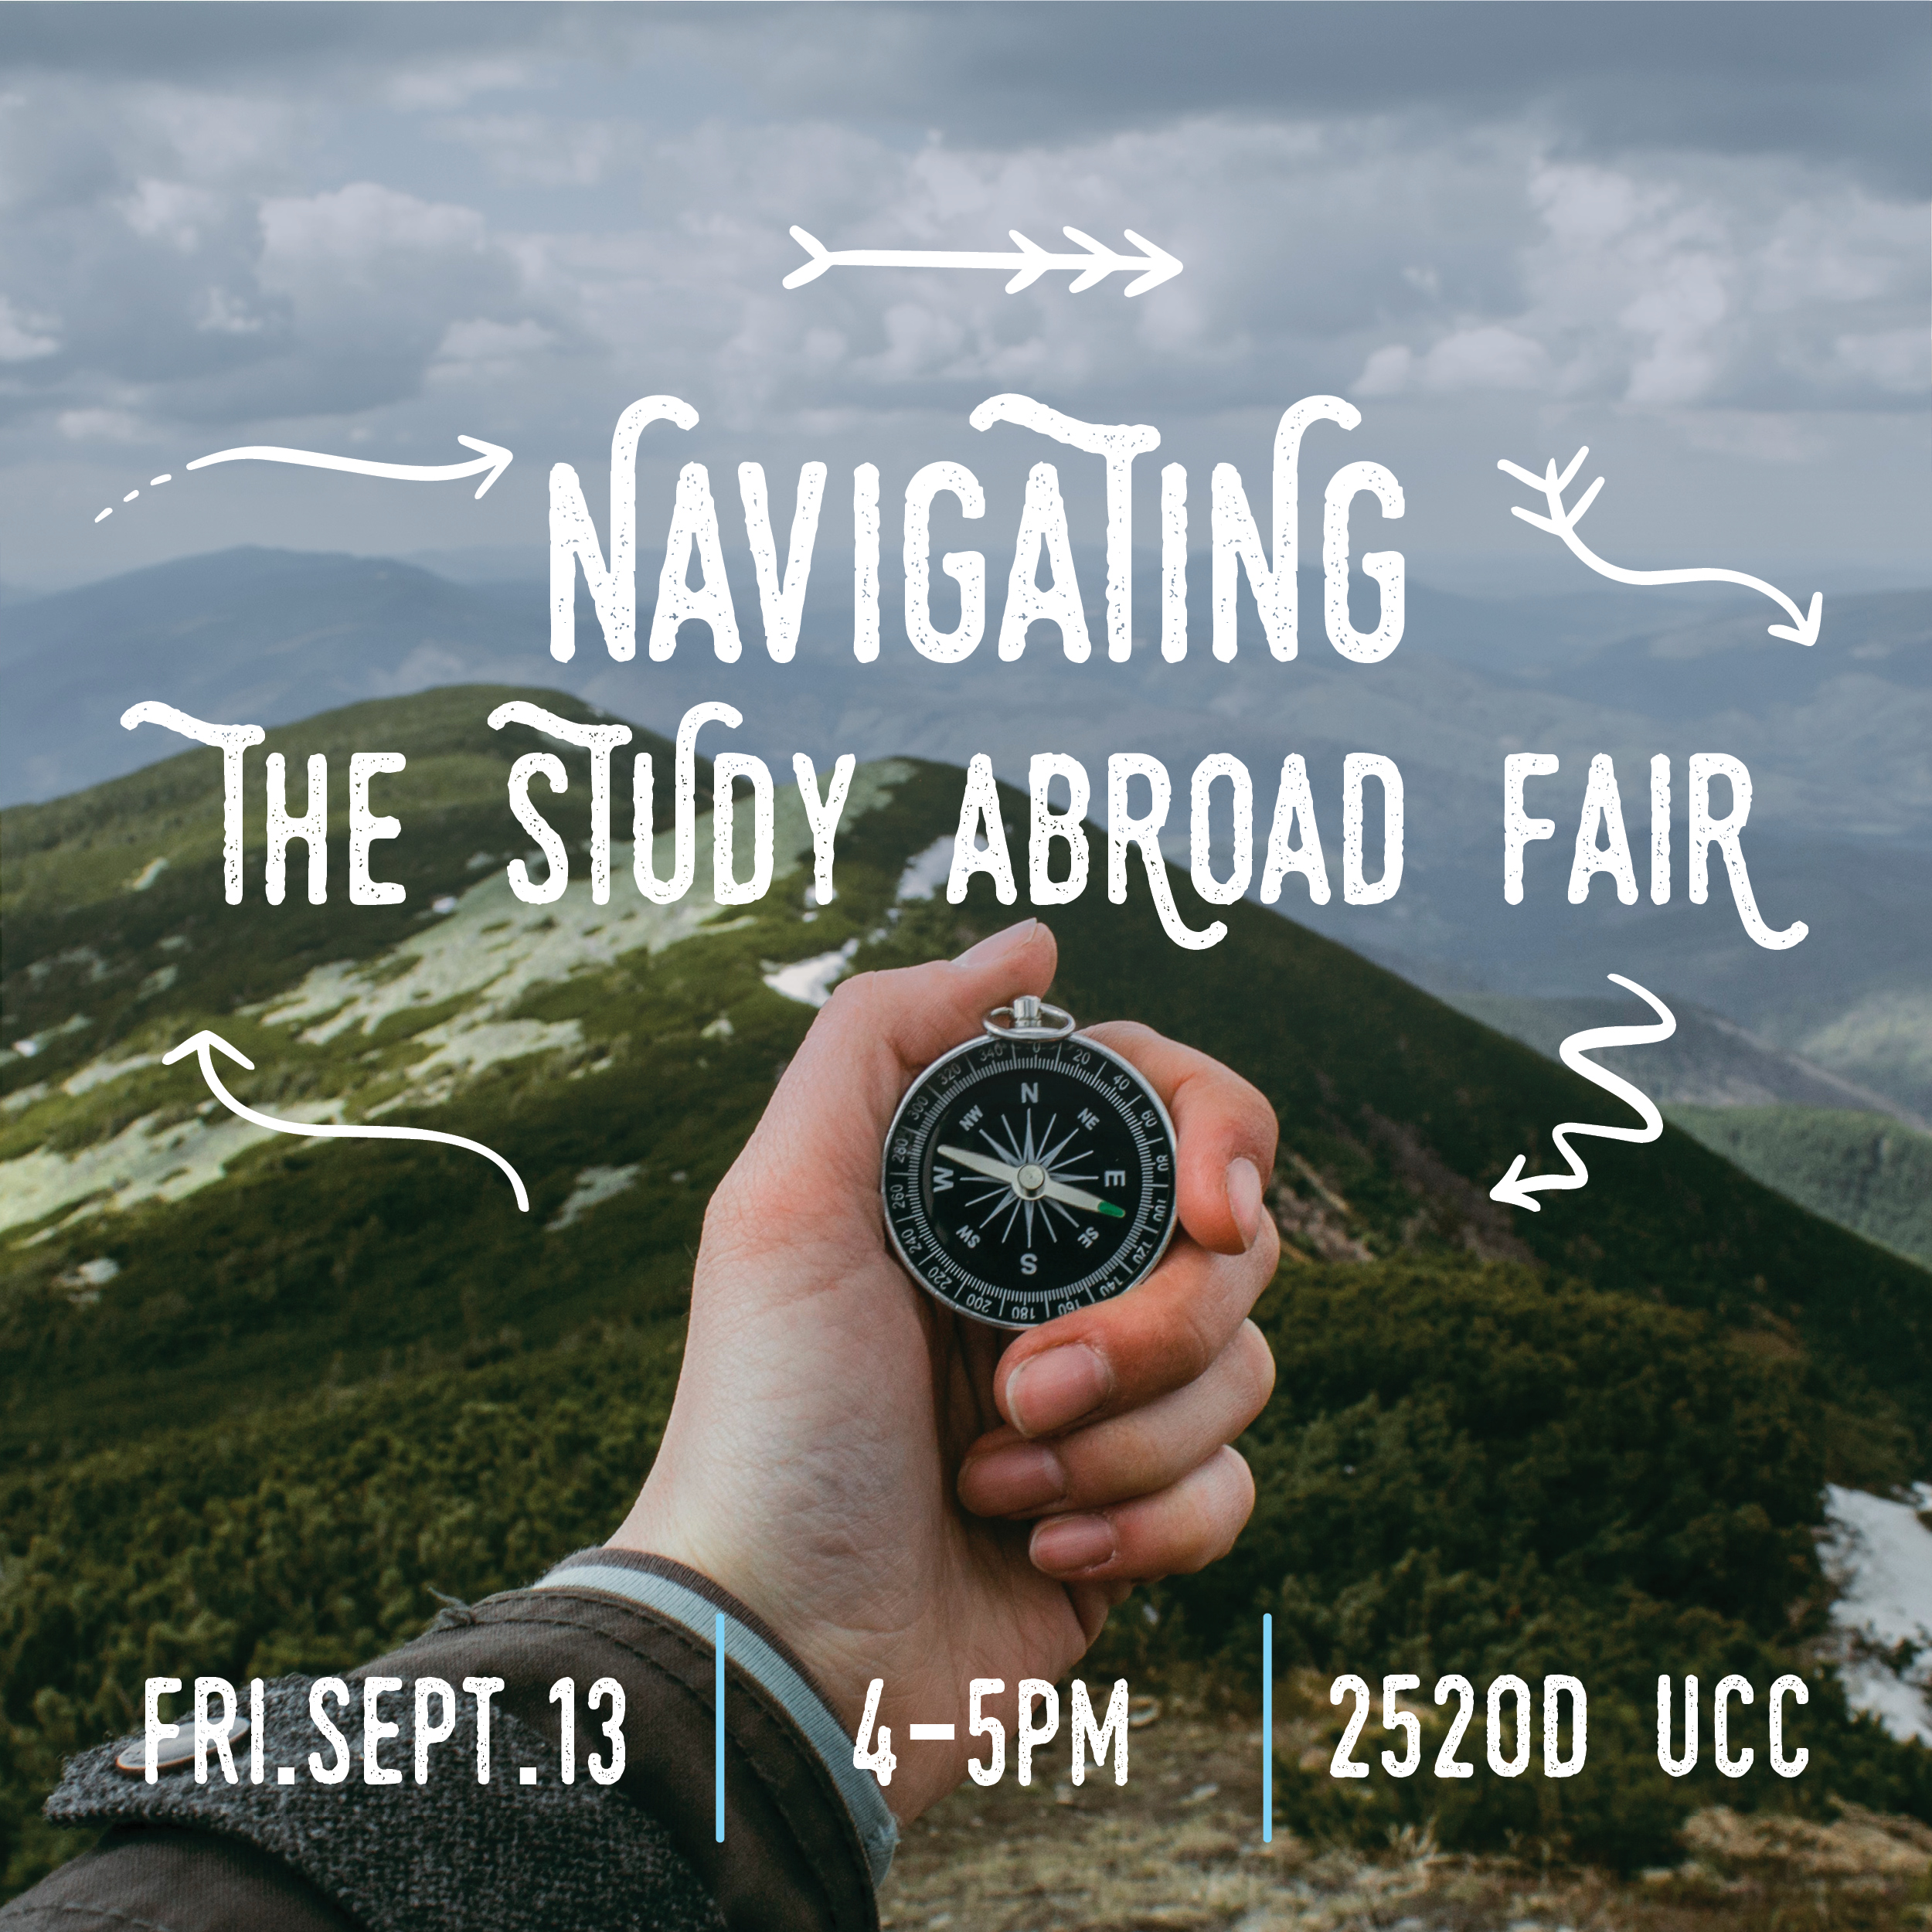 Navigating the study abroad fair on Sept 13 from 4-5pm